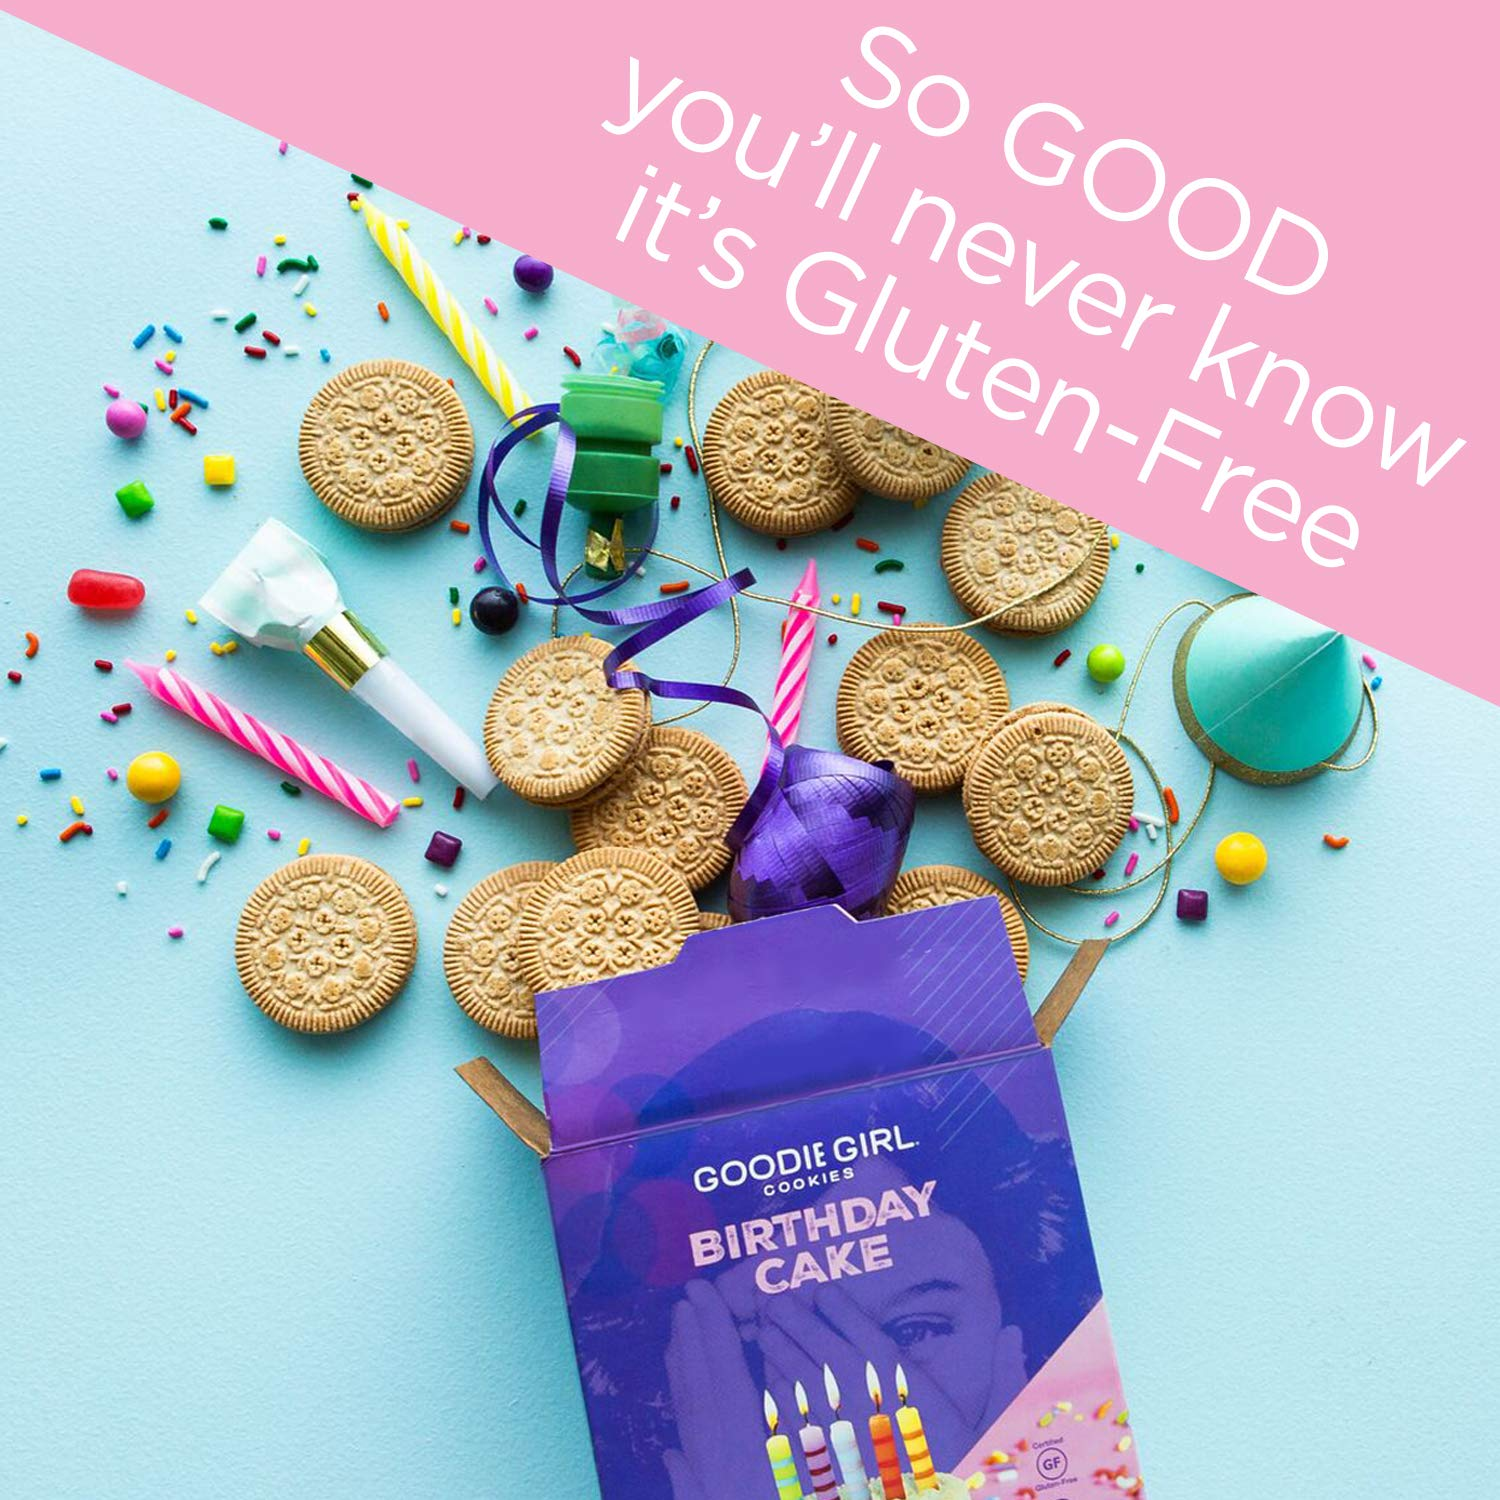 Amazon Goodie Girl Cookies Birthday Cake Sandwich Gluten Free And Peanut Delicious Snack 10oz Box Pack Of 3